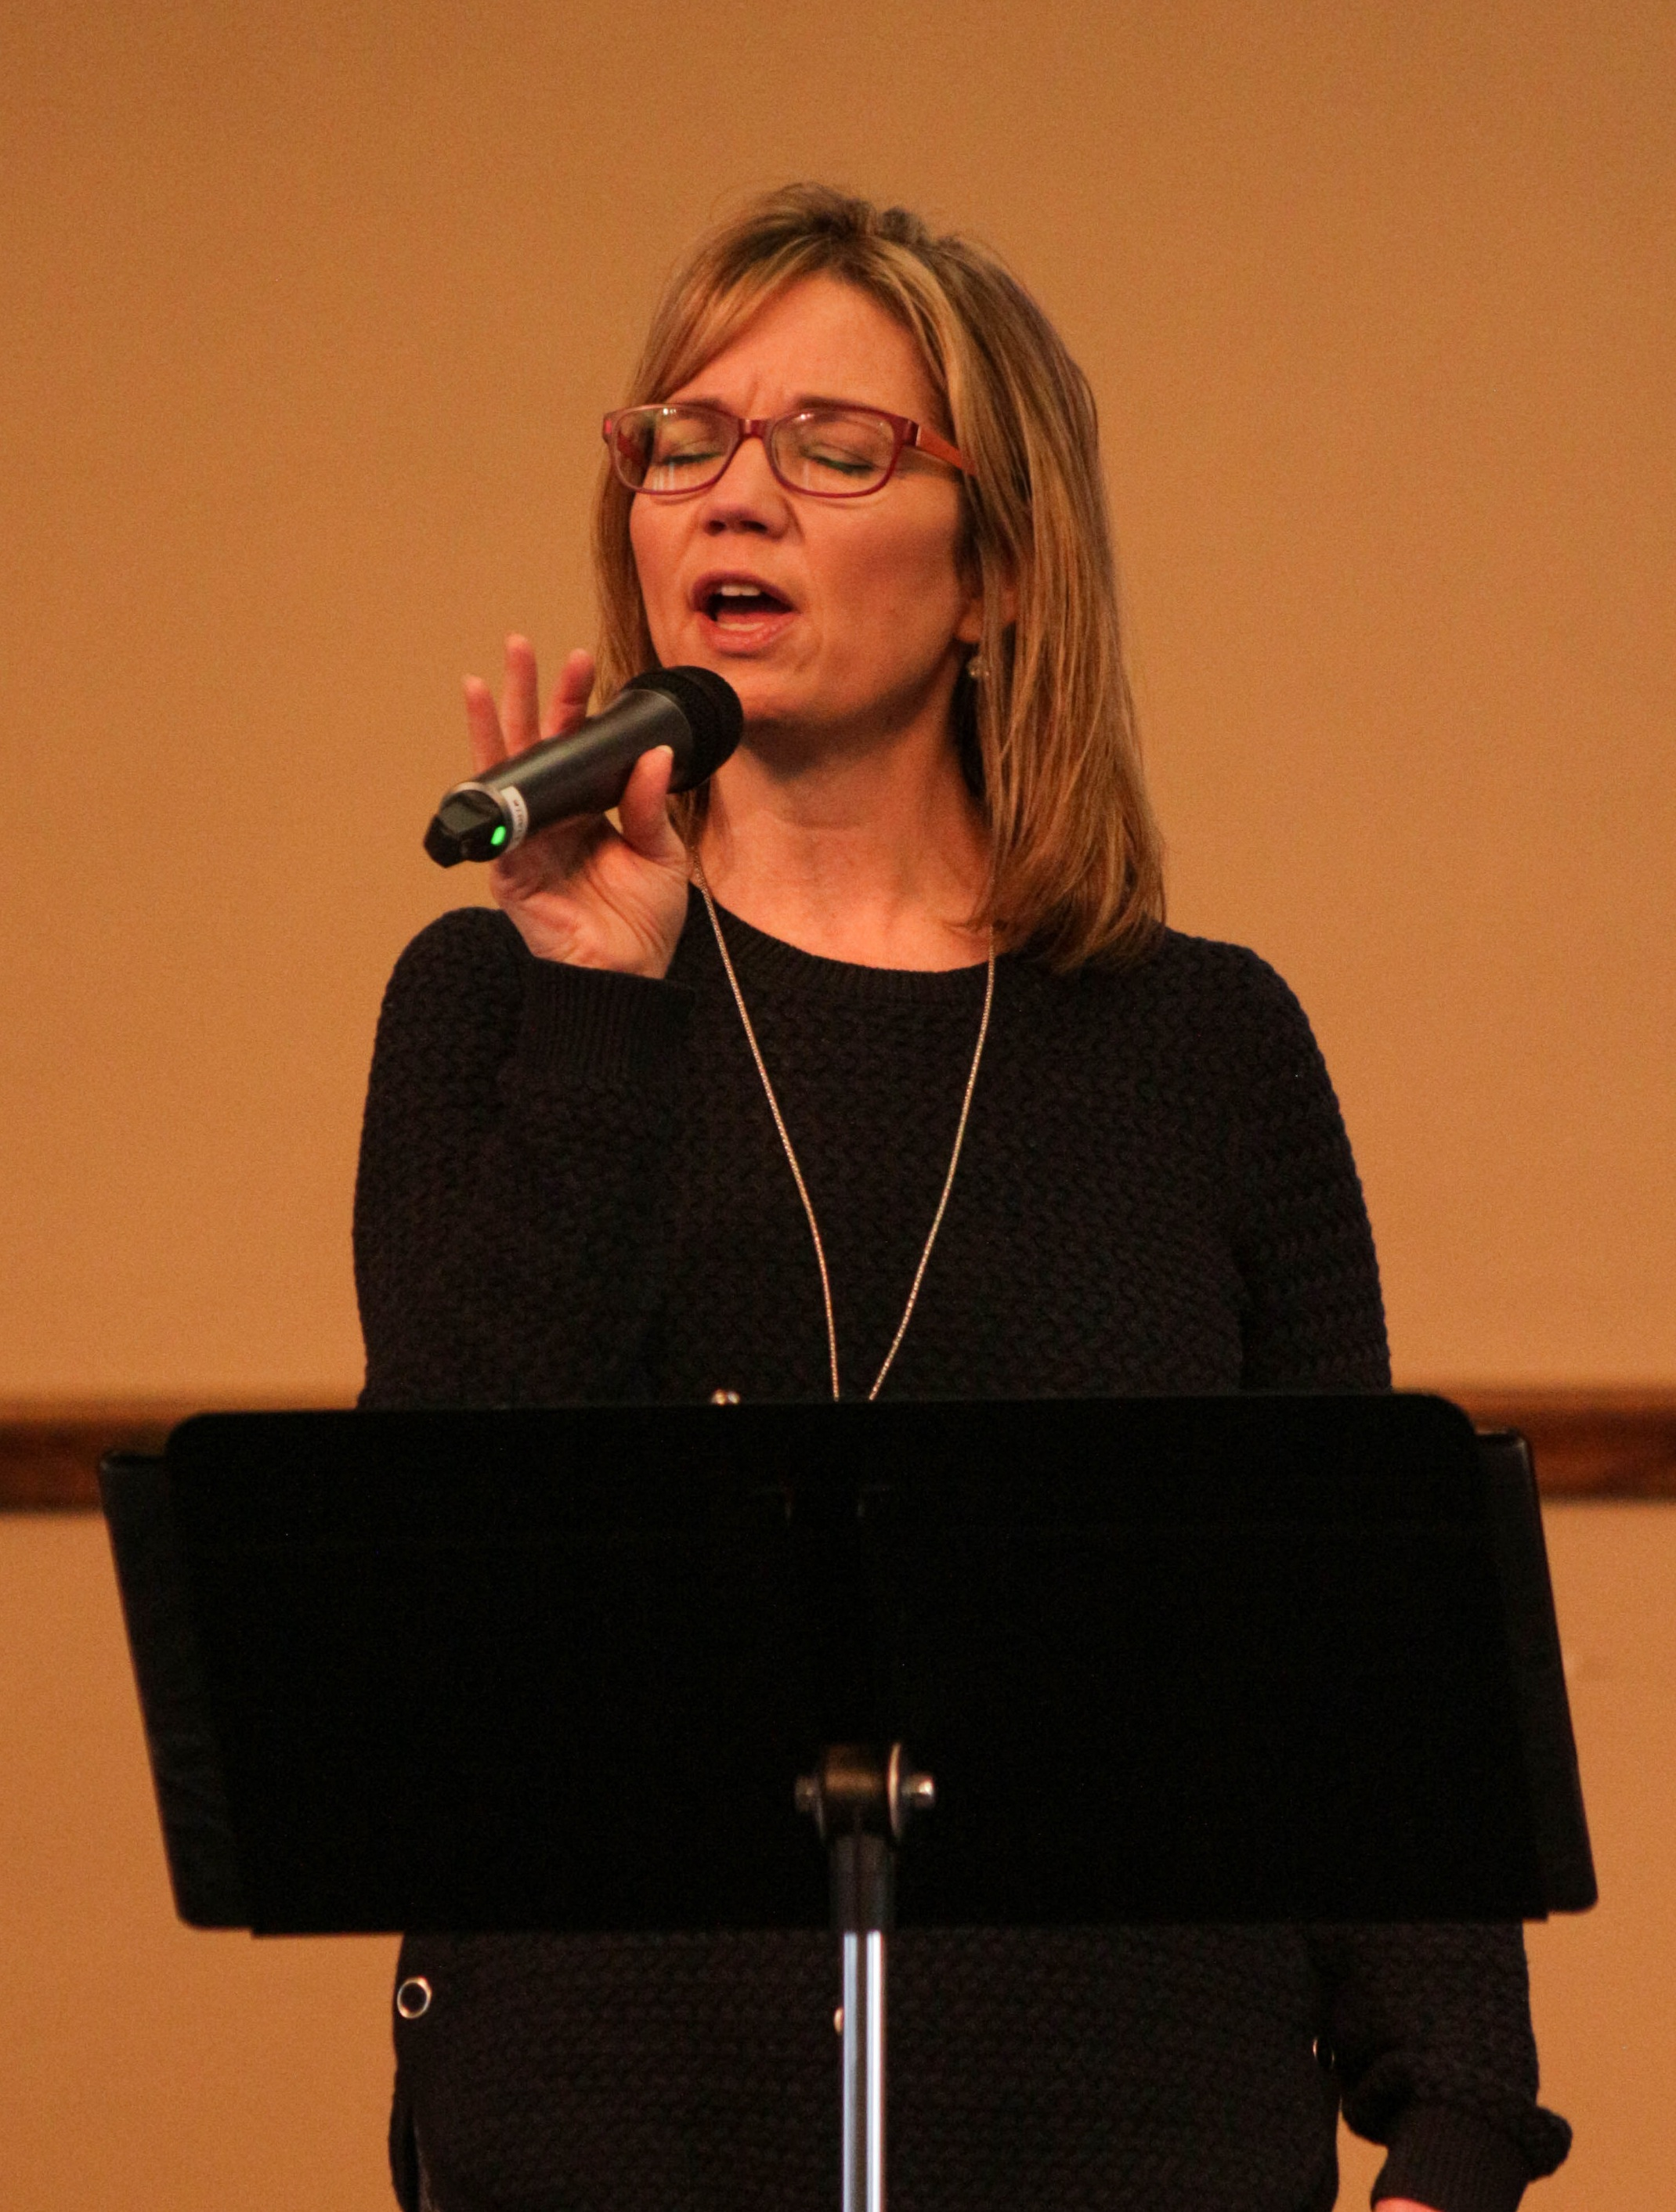 Brenda Roman sings at Dutilh's 9:30 a.m. service.   Photo courtesy of Sam Hogue.